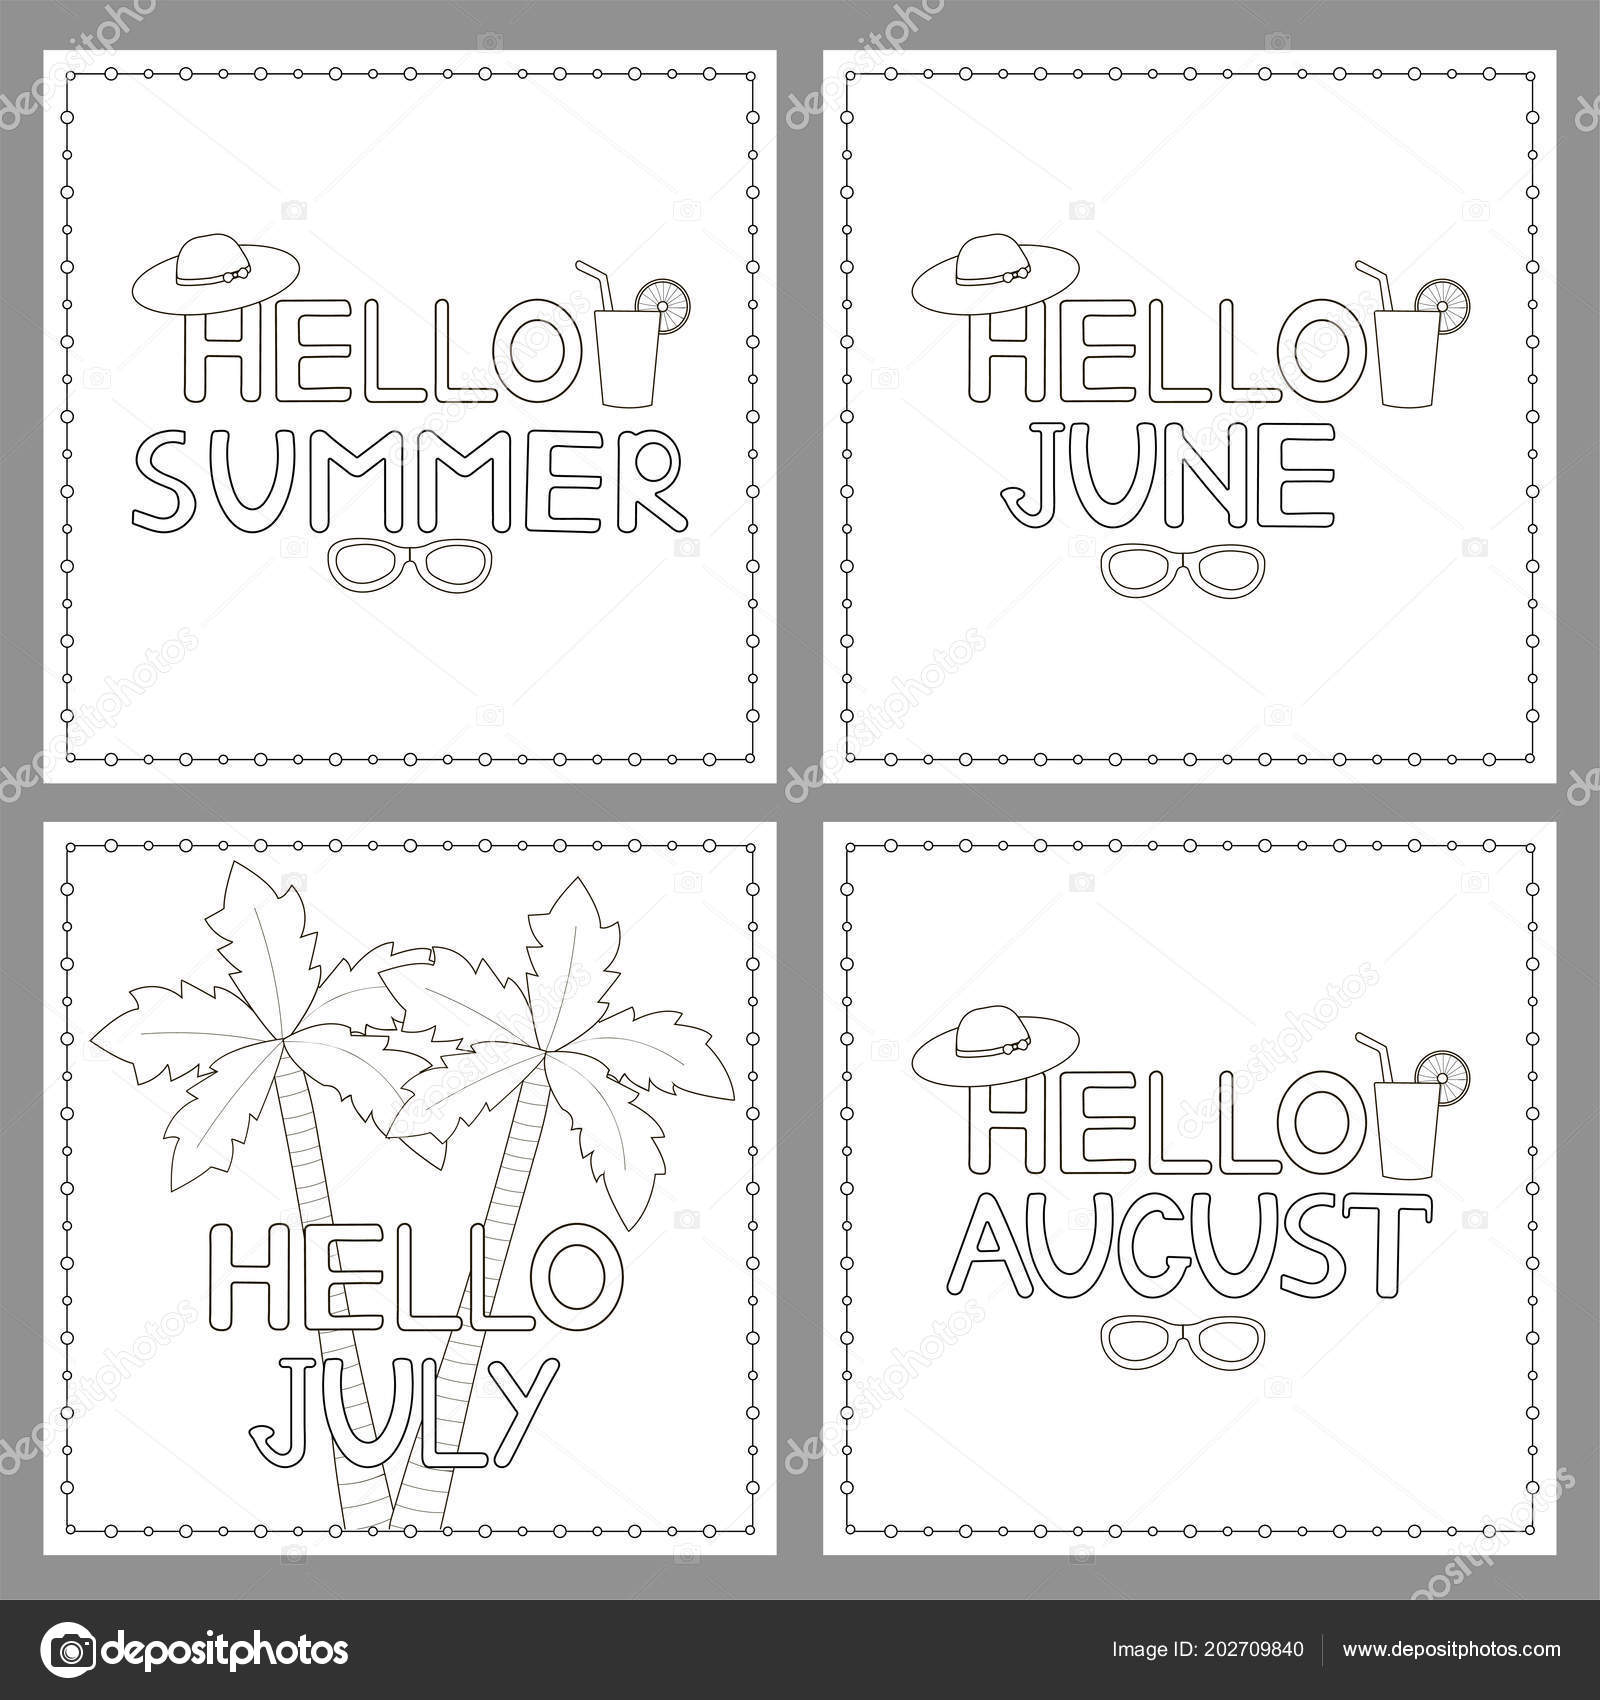 Hello Summer Coloring Pages Coloring Pages Set Phrases